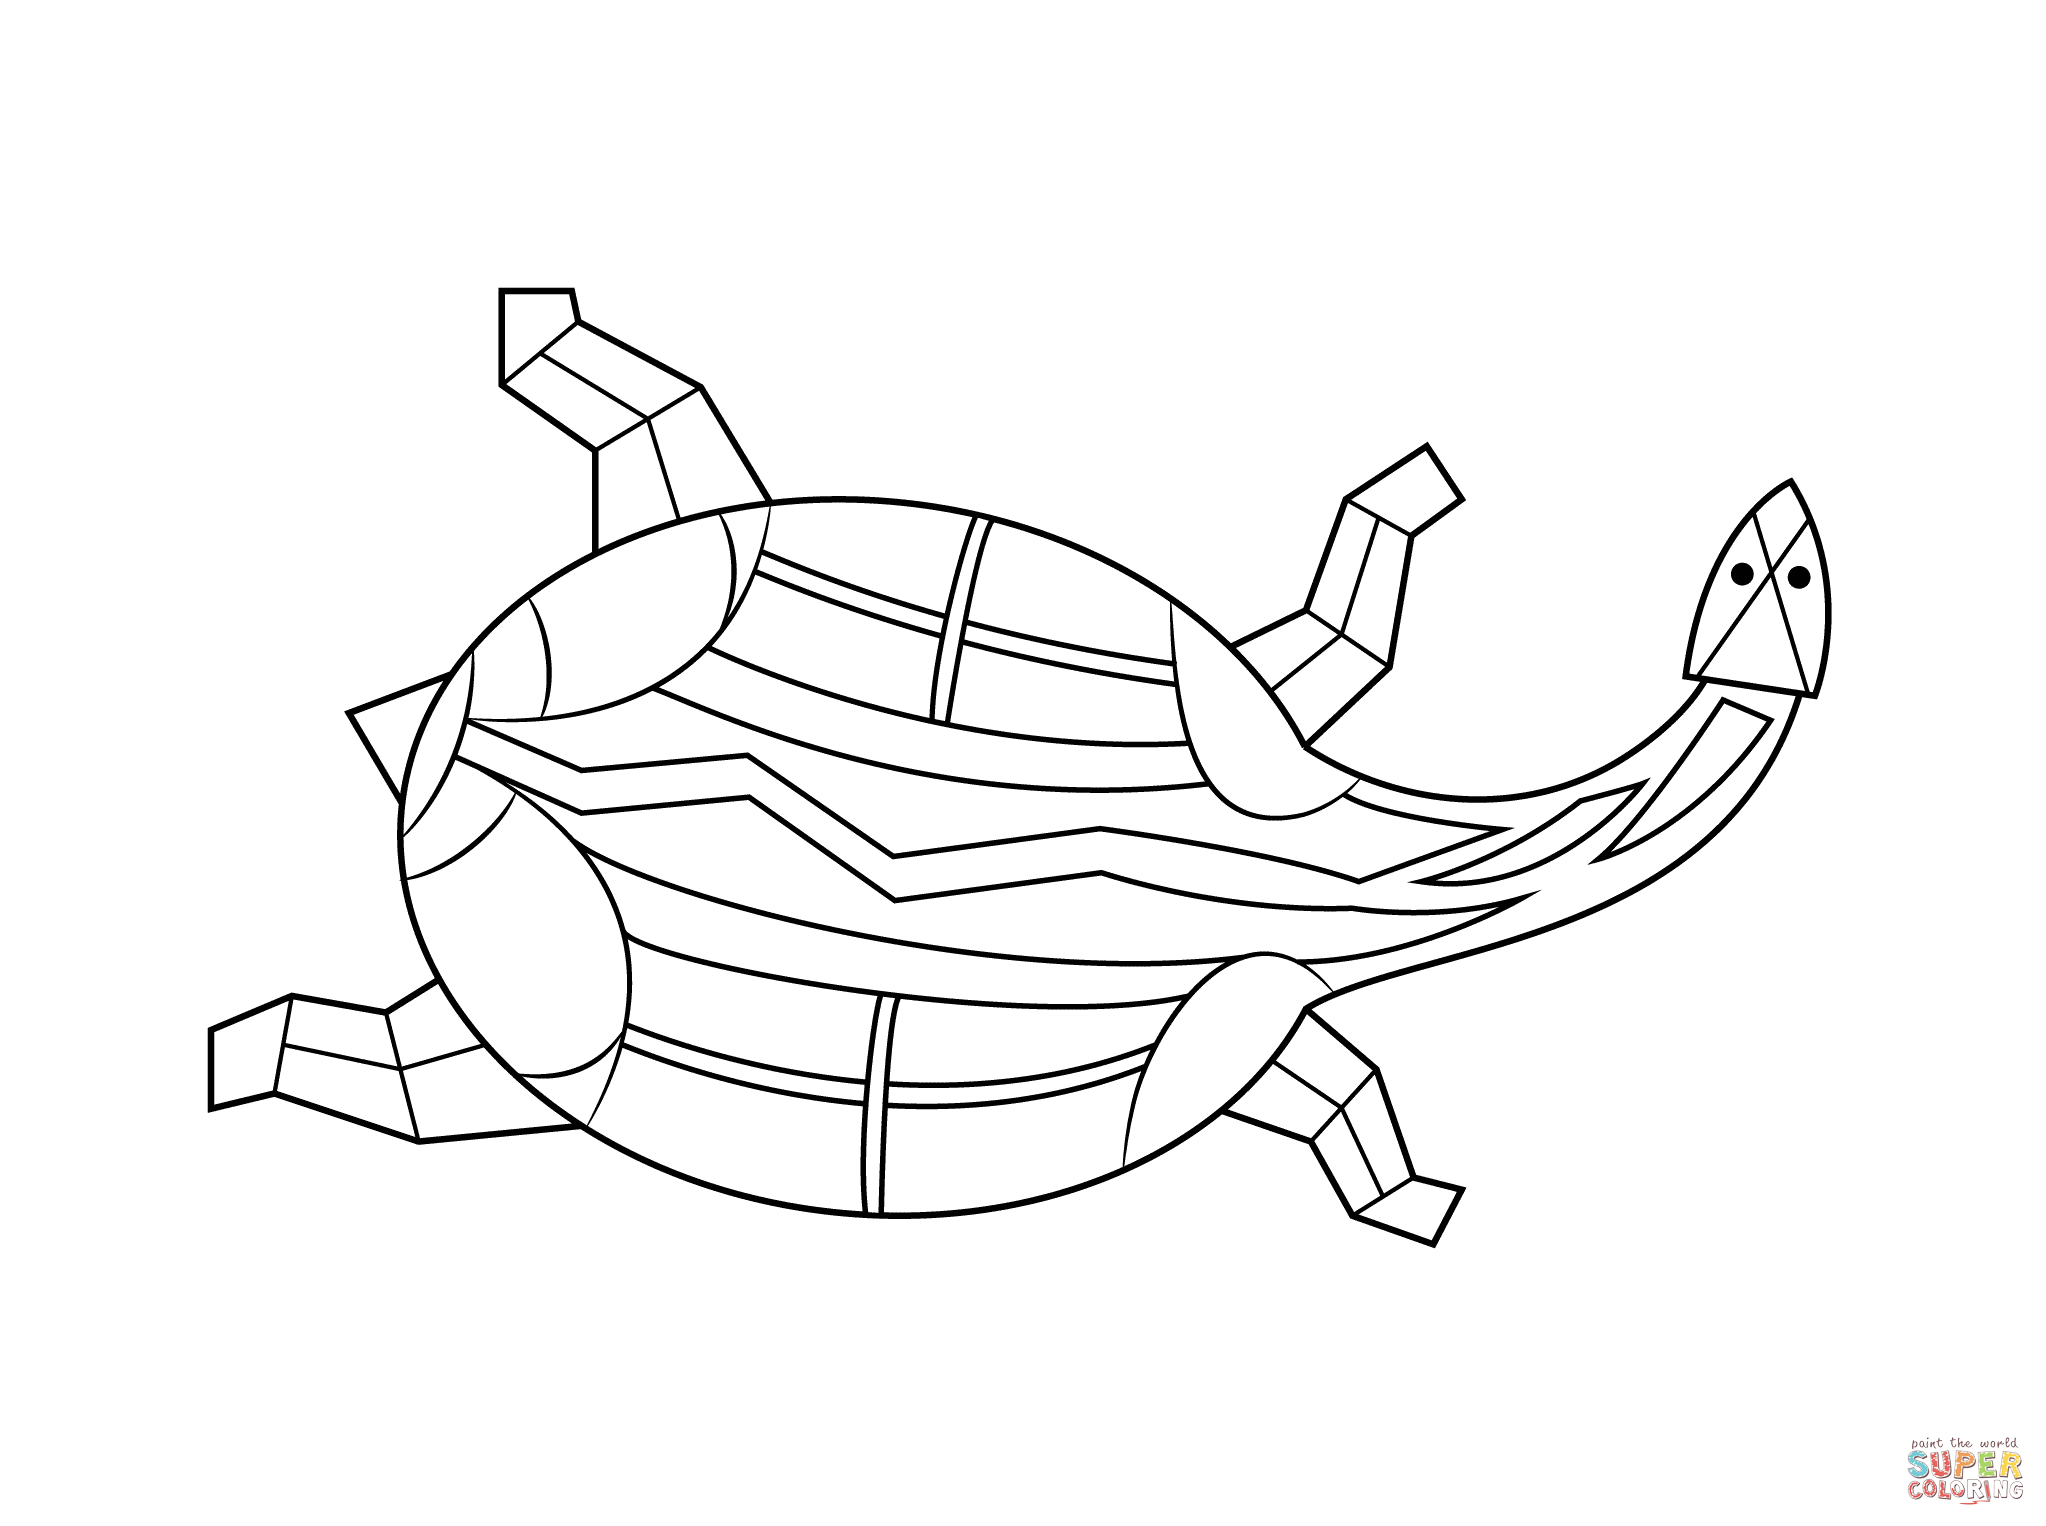 Aboriginal Painting Of Turtle Coloring Page | Free Printable - Free Printable Aboriginal Colouring Pages